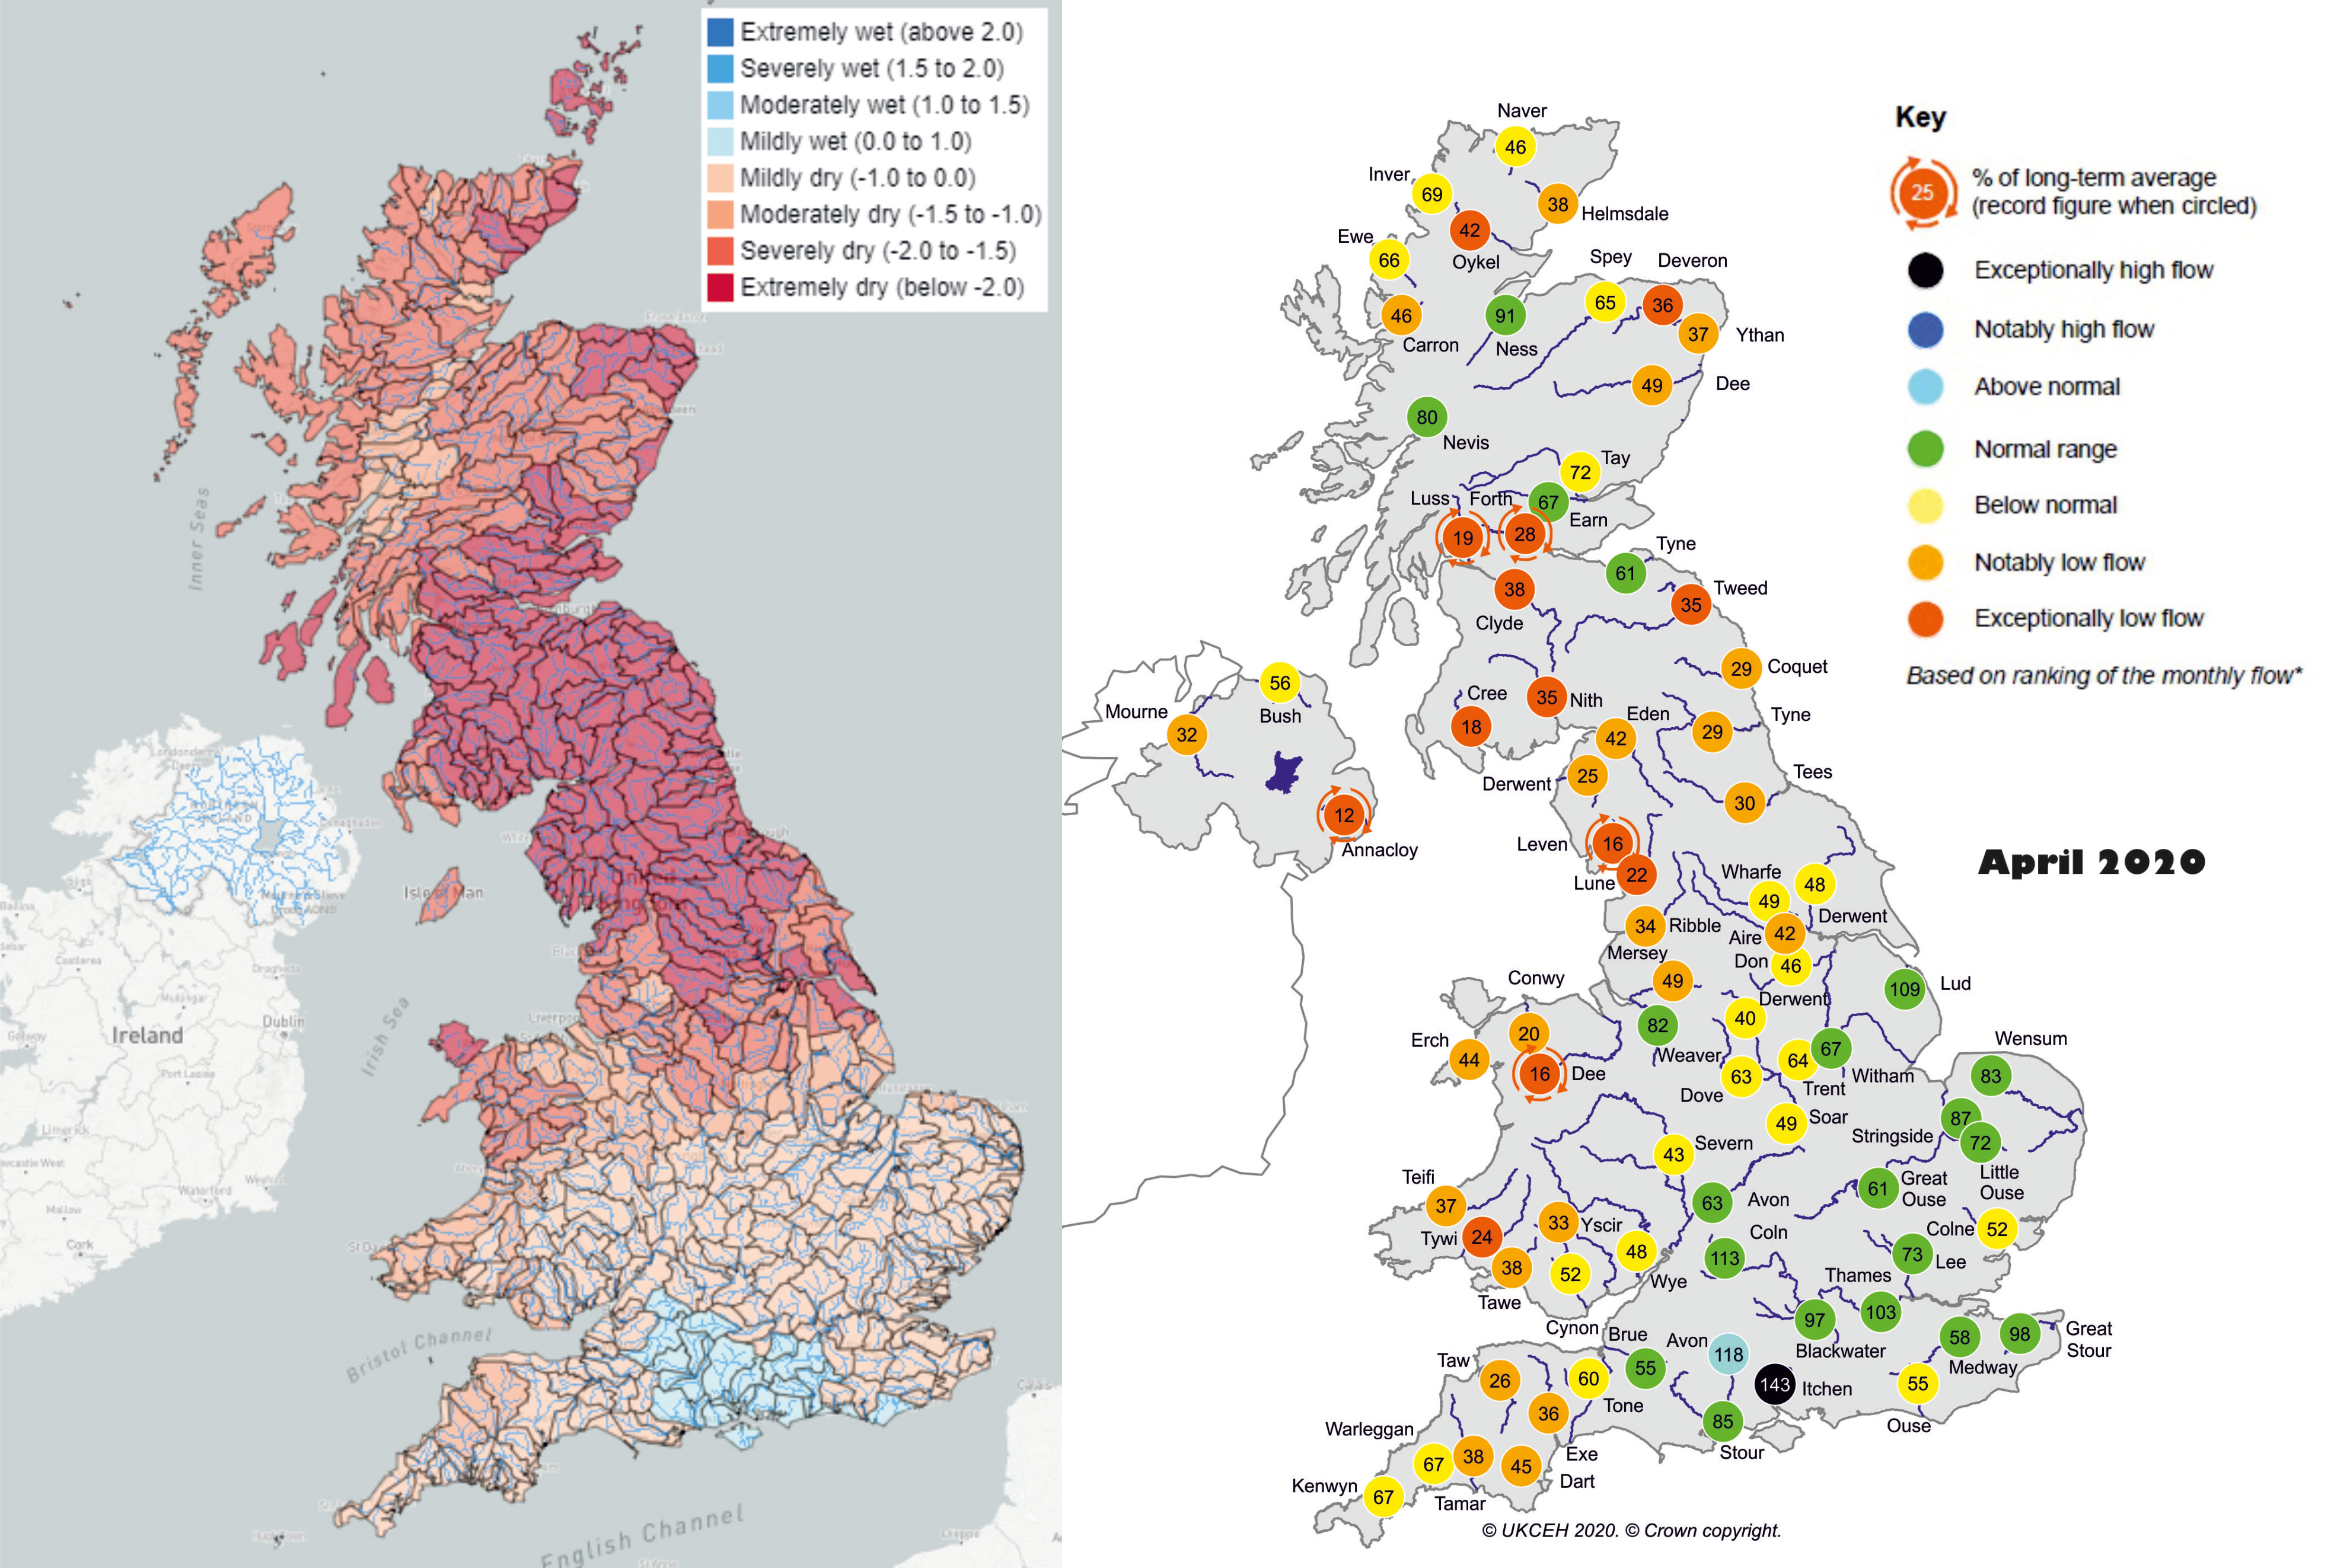 Charts showing Standardised Precipitation Index in April 2020 and April monthly mean river flows for the UK